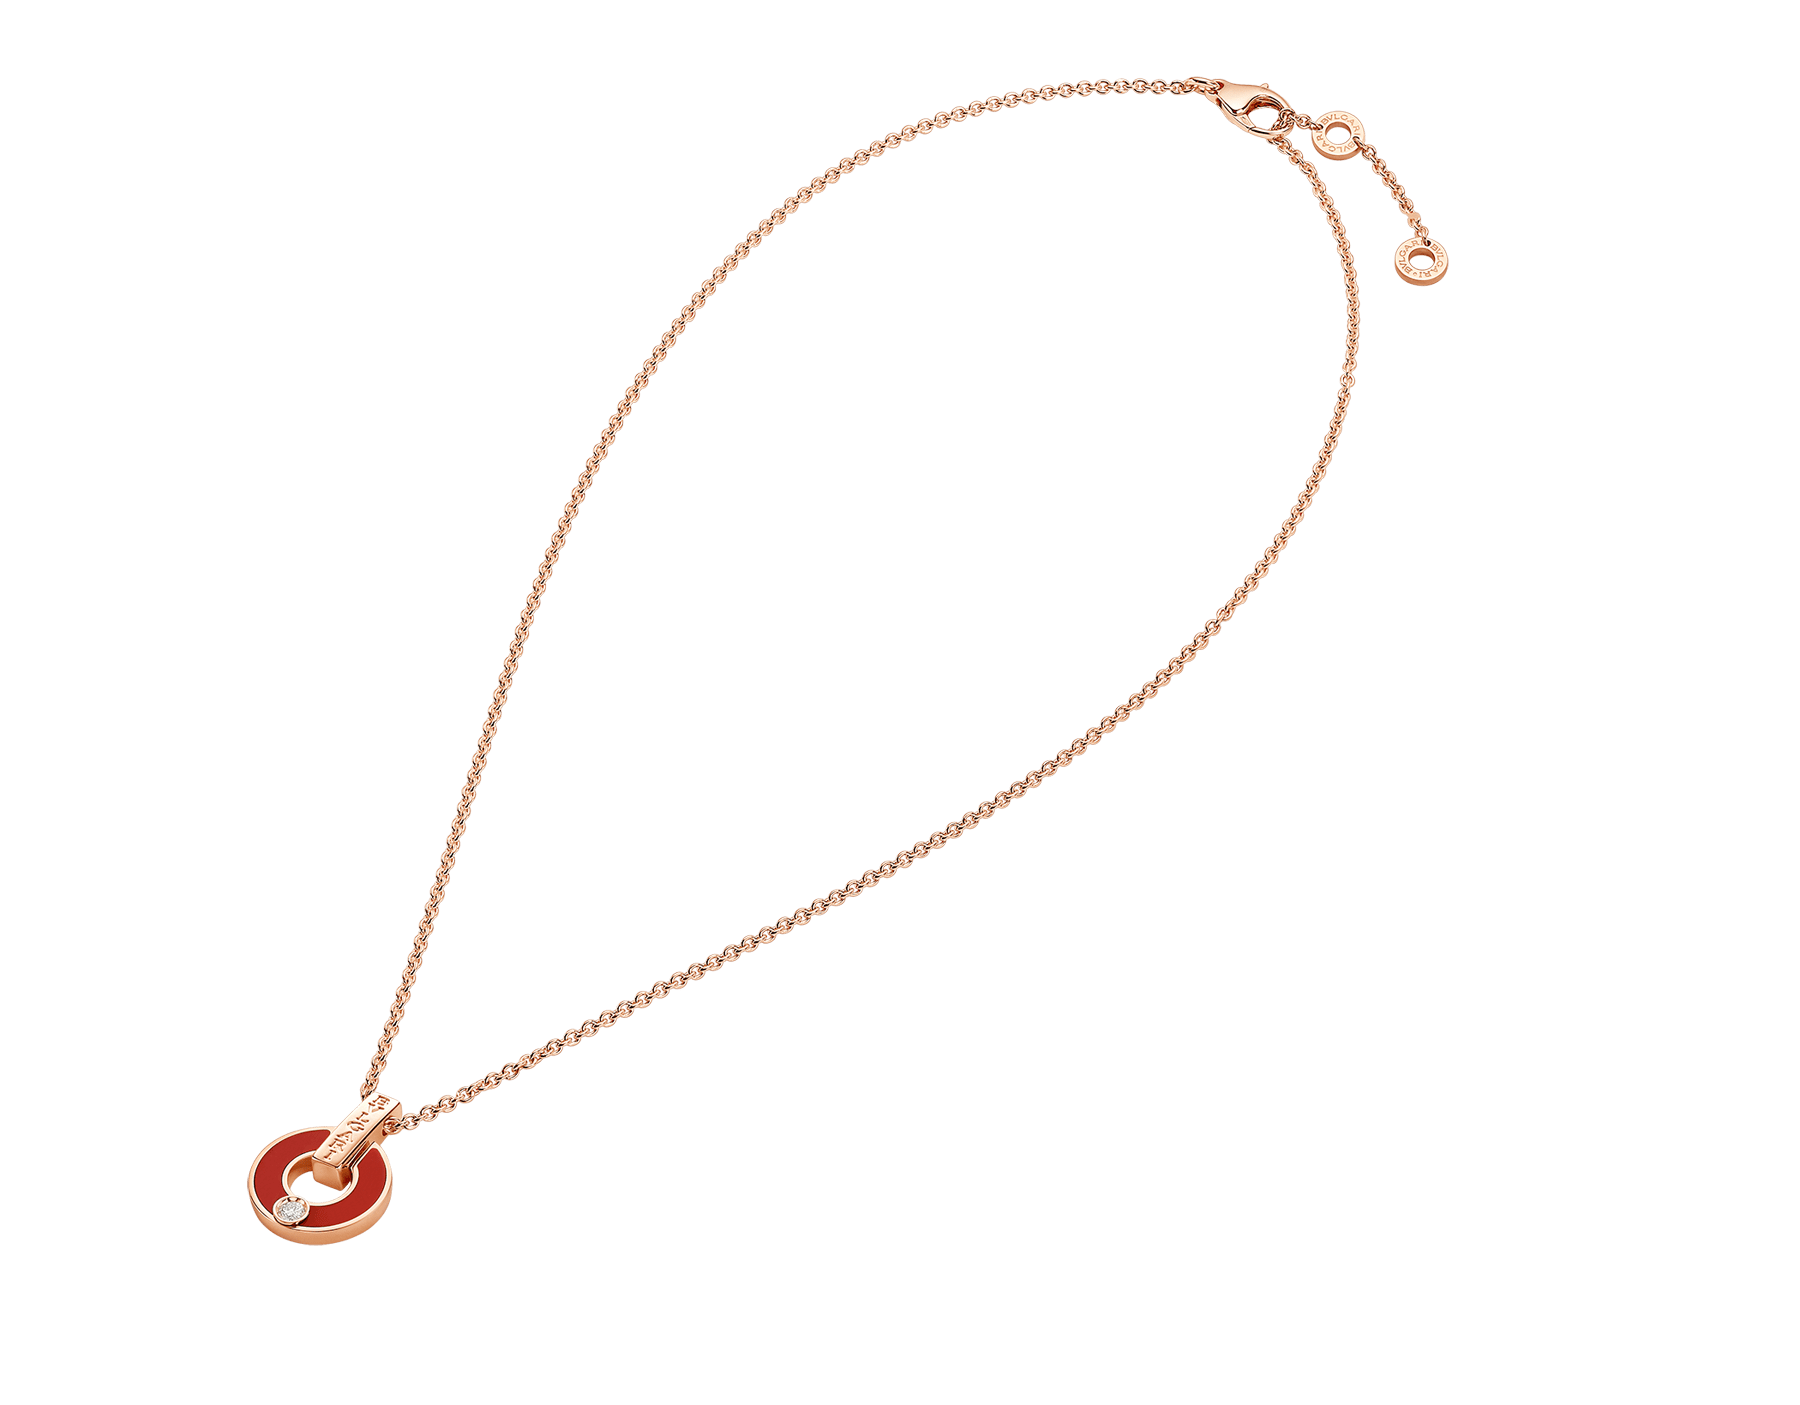 BVLGARI BVLGARI Openwork 18 kt yellow gold necklace set with coral elements and a round brilliant-cut diamond 357921 image 2